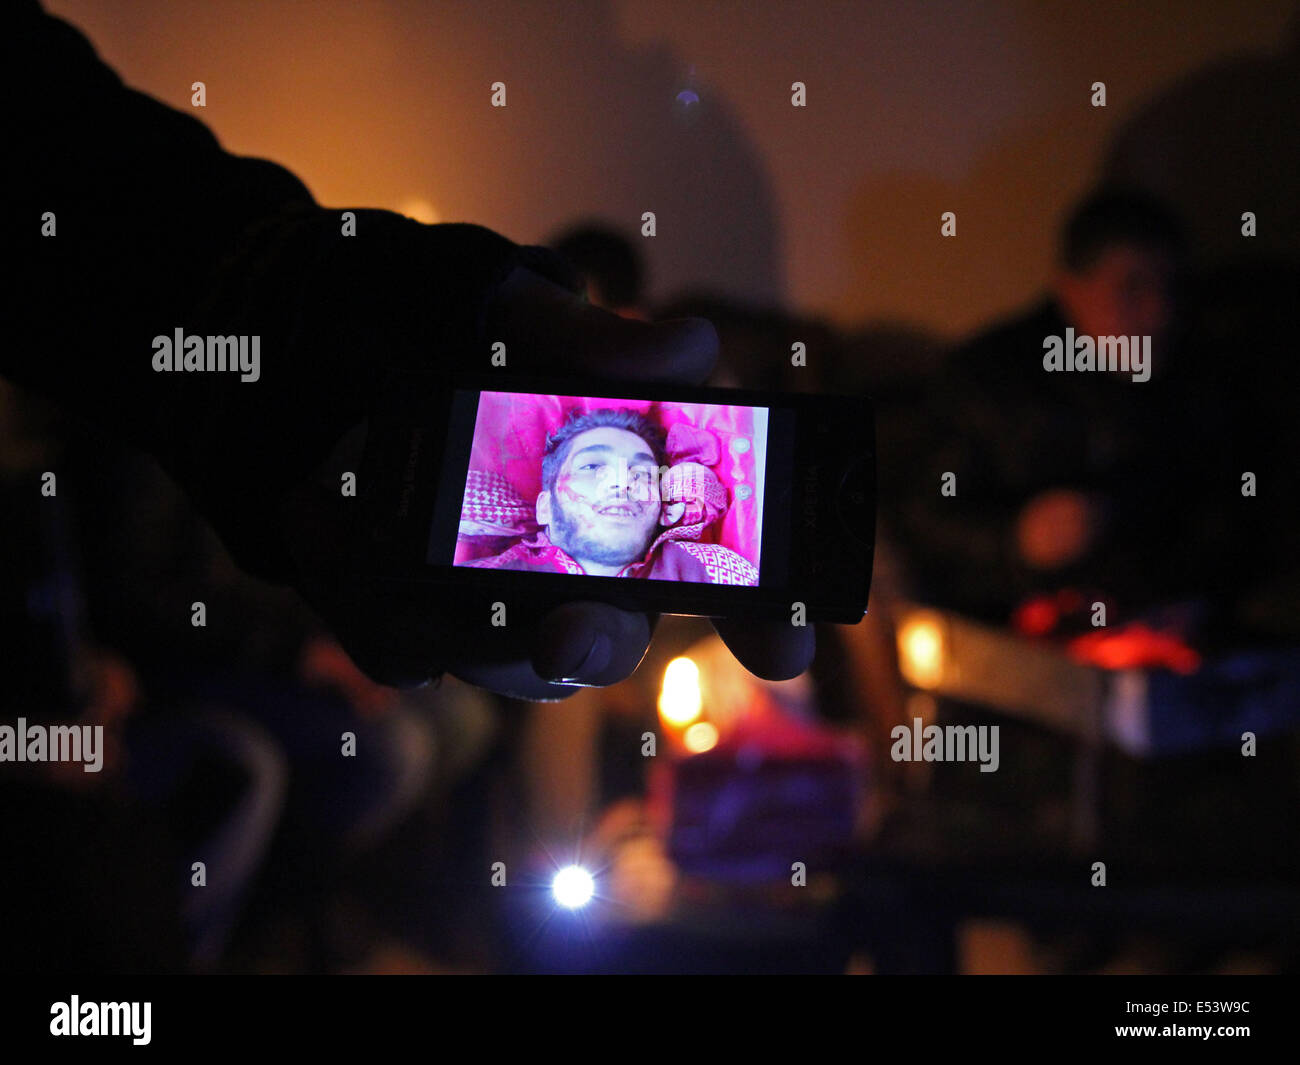 Aleppo, Syria. 16th Jan, 2013. A fighter shows an image of his best friend who was killed on the frontlines of Aleppo, - Stock Image